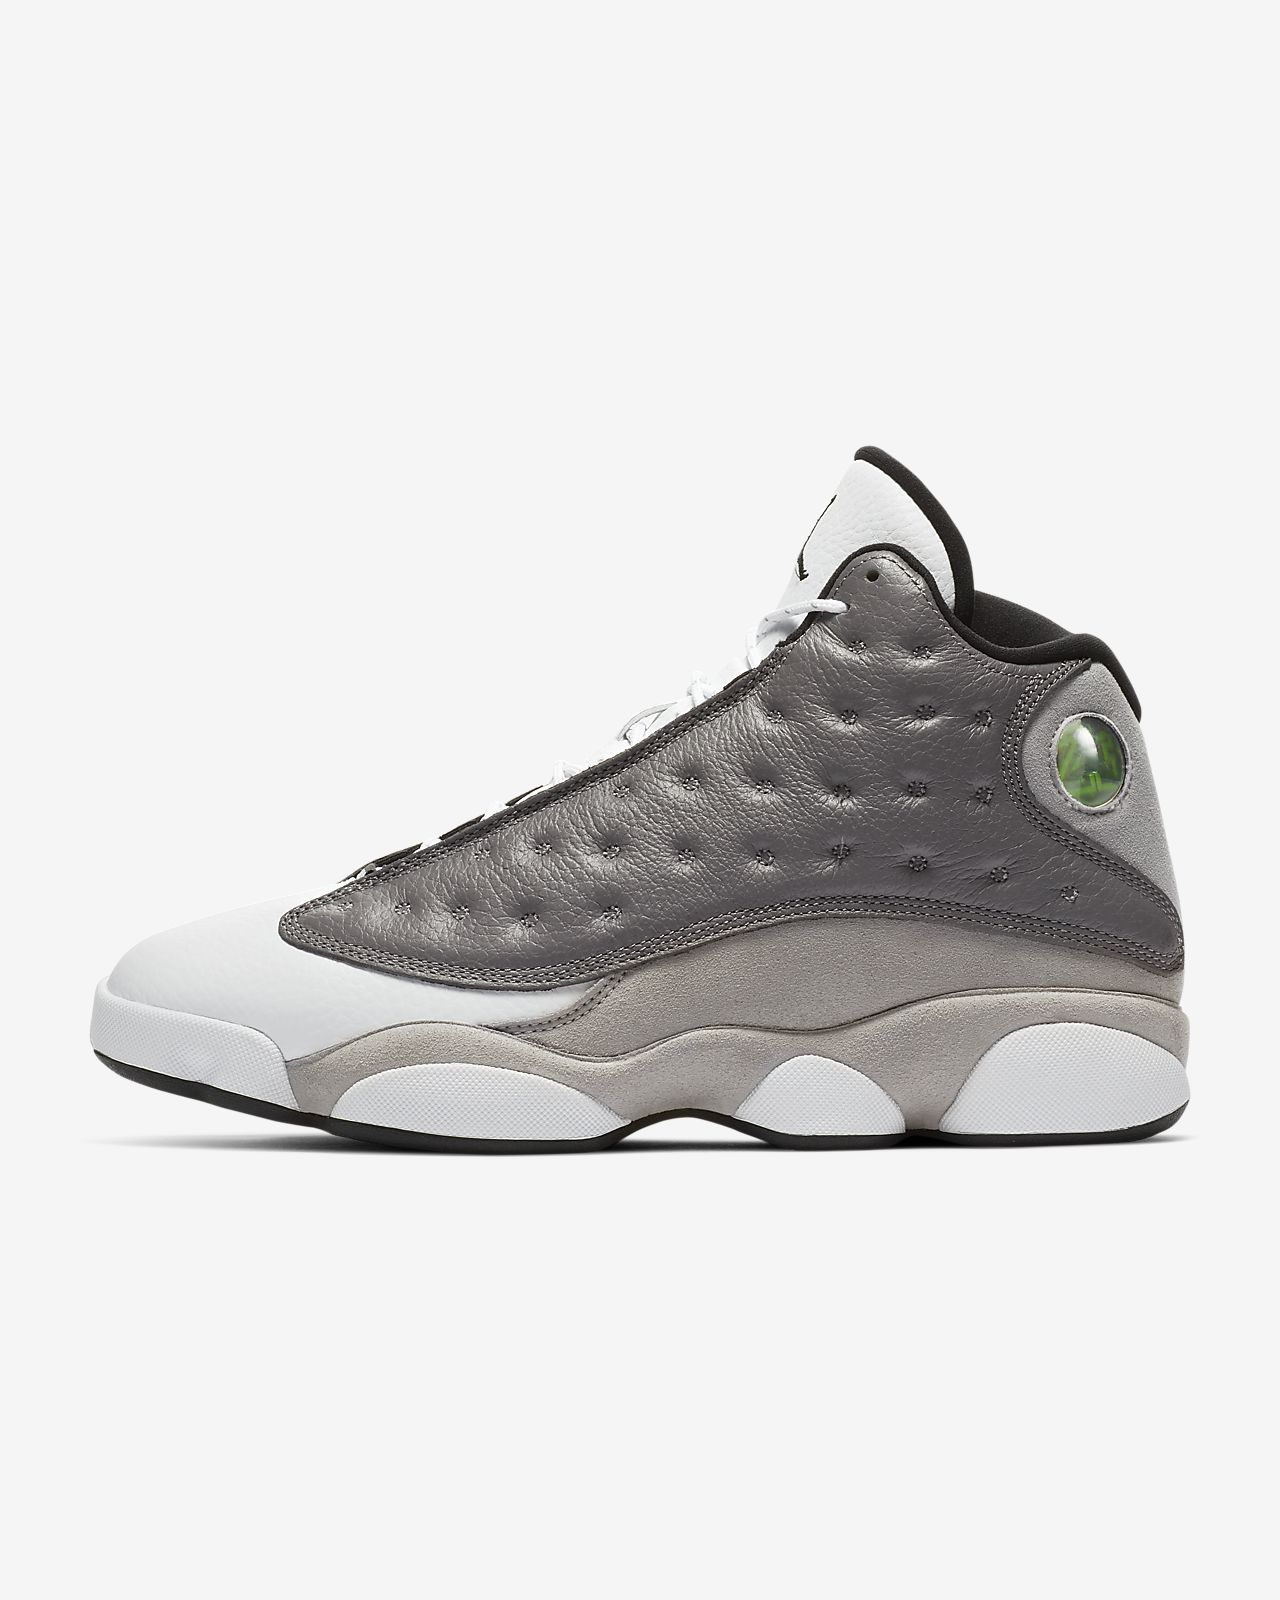 official photos 03383 2e445 Air Jordan 13 Retro Men's Shoe. Nike.com ID